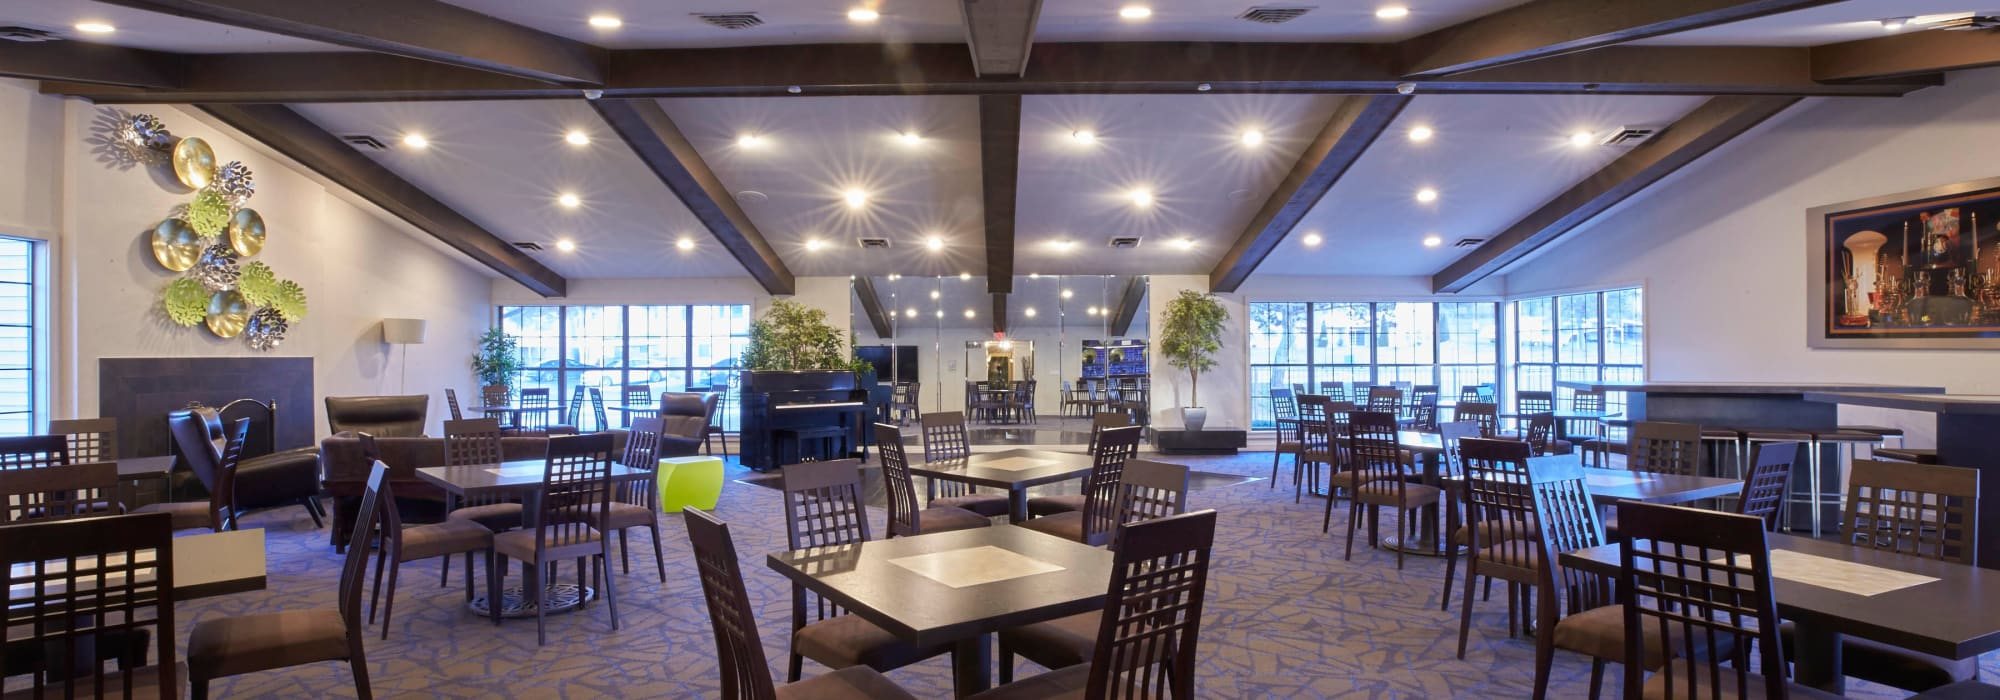 Interior of clubhouse at Muirwood in Farmington Hills, Michigan